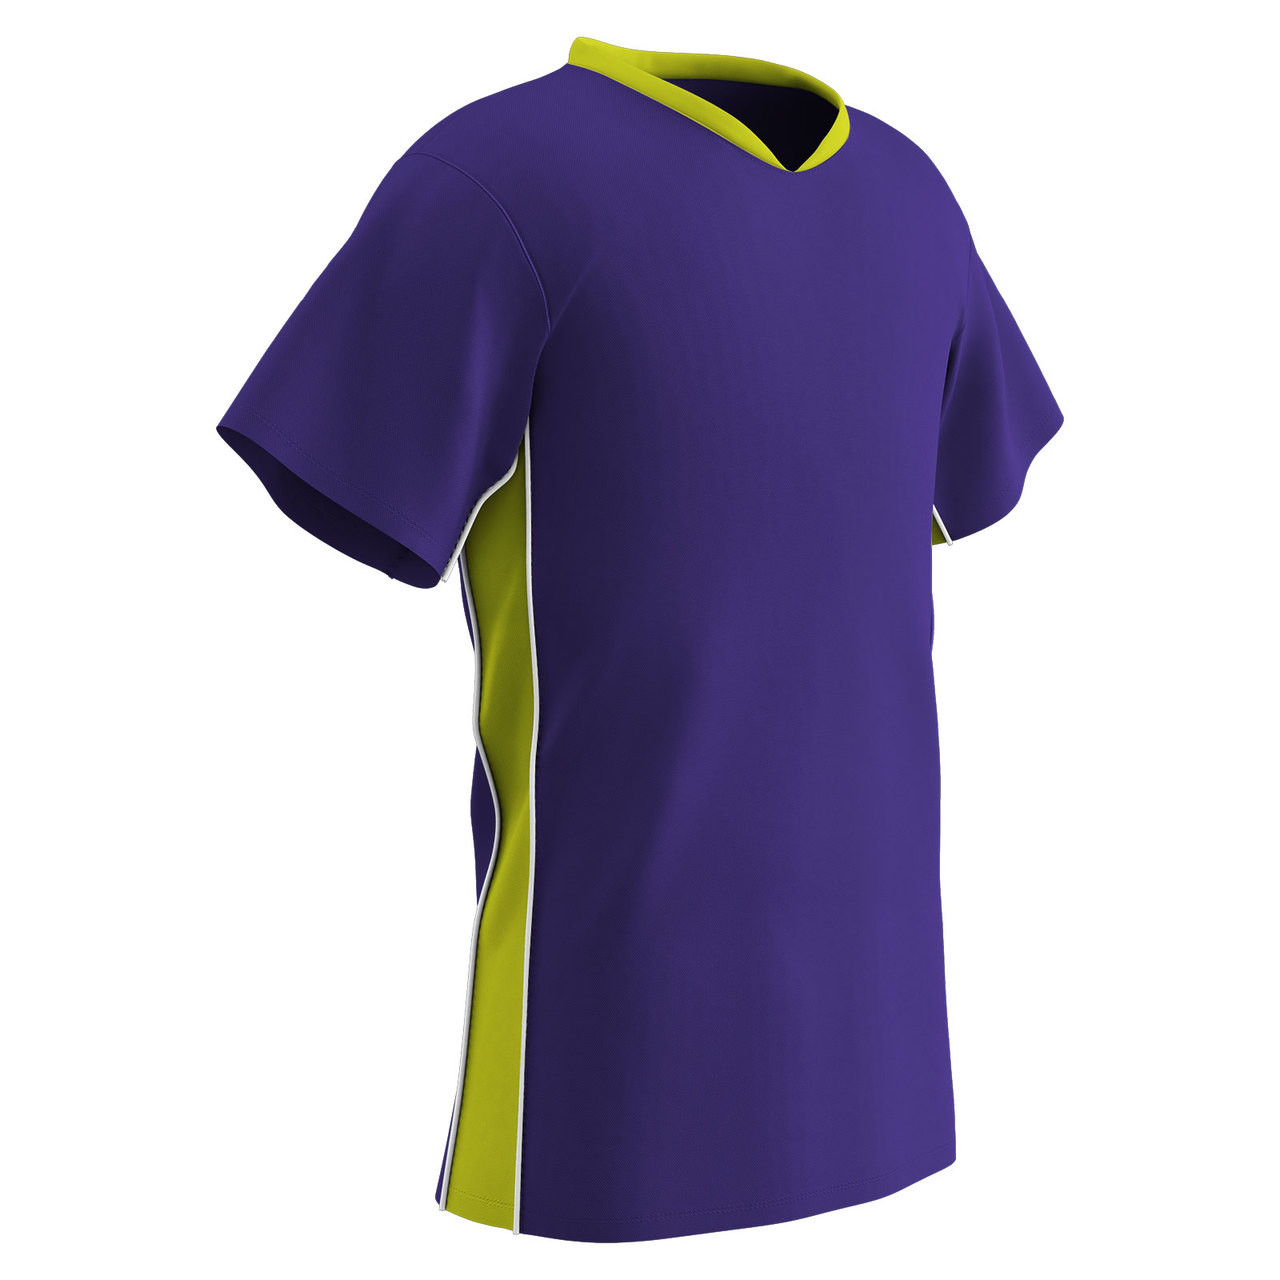 29056e027 Champro Sports Header soccer jersey in purple optic yellow